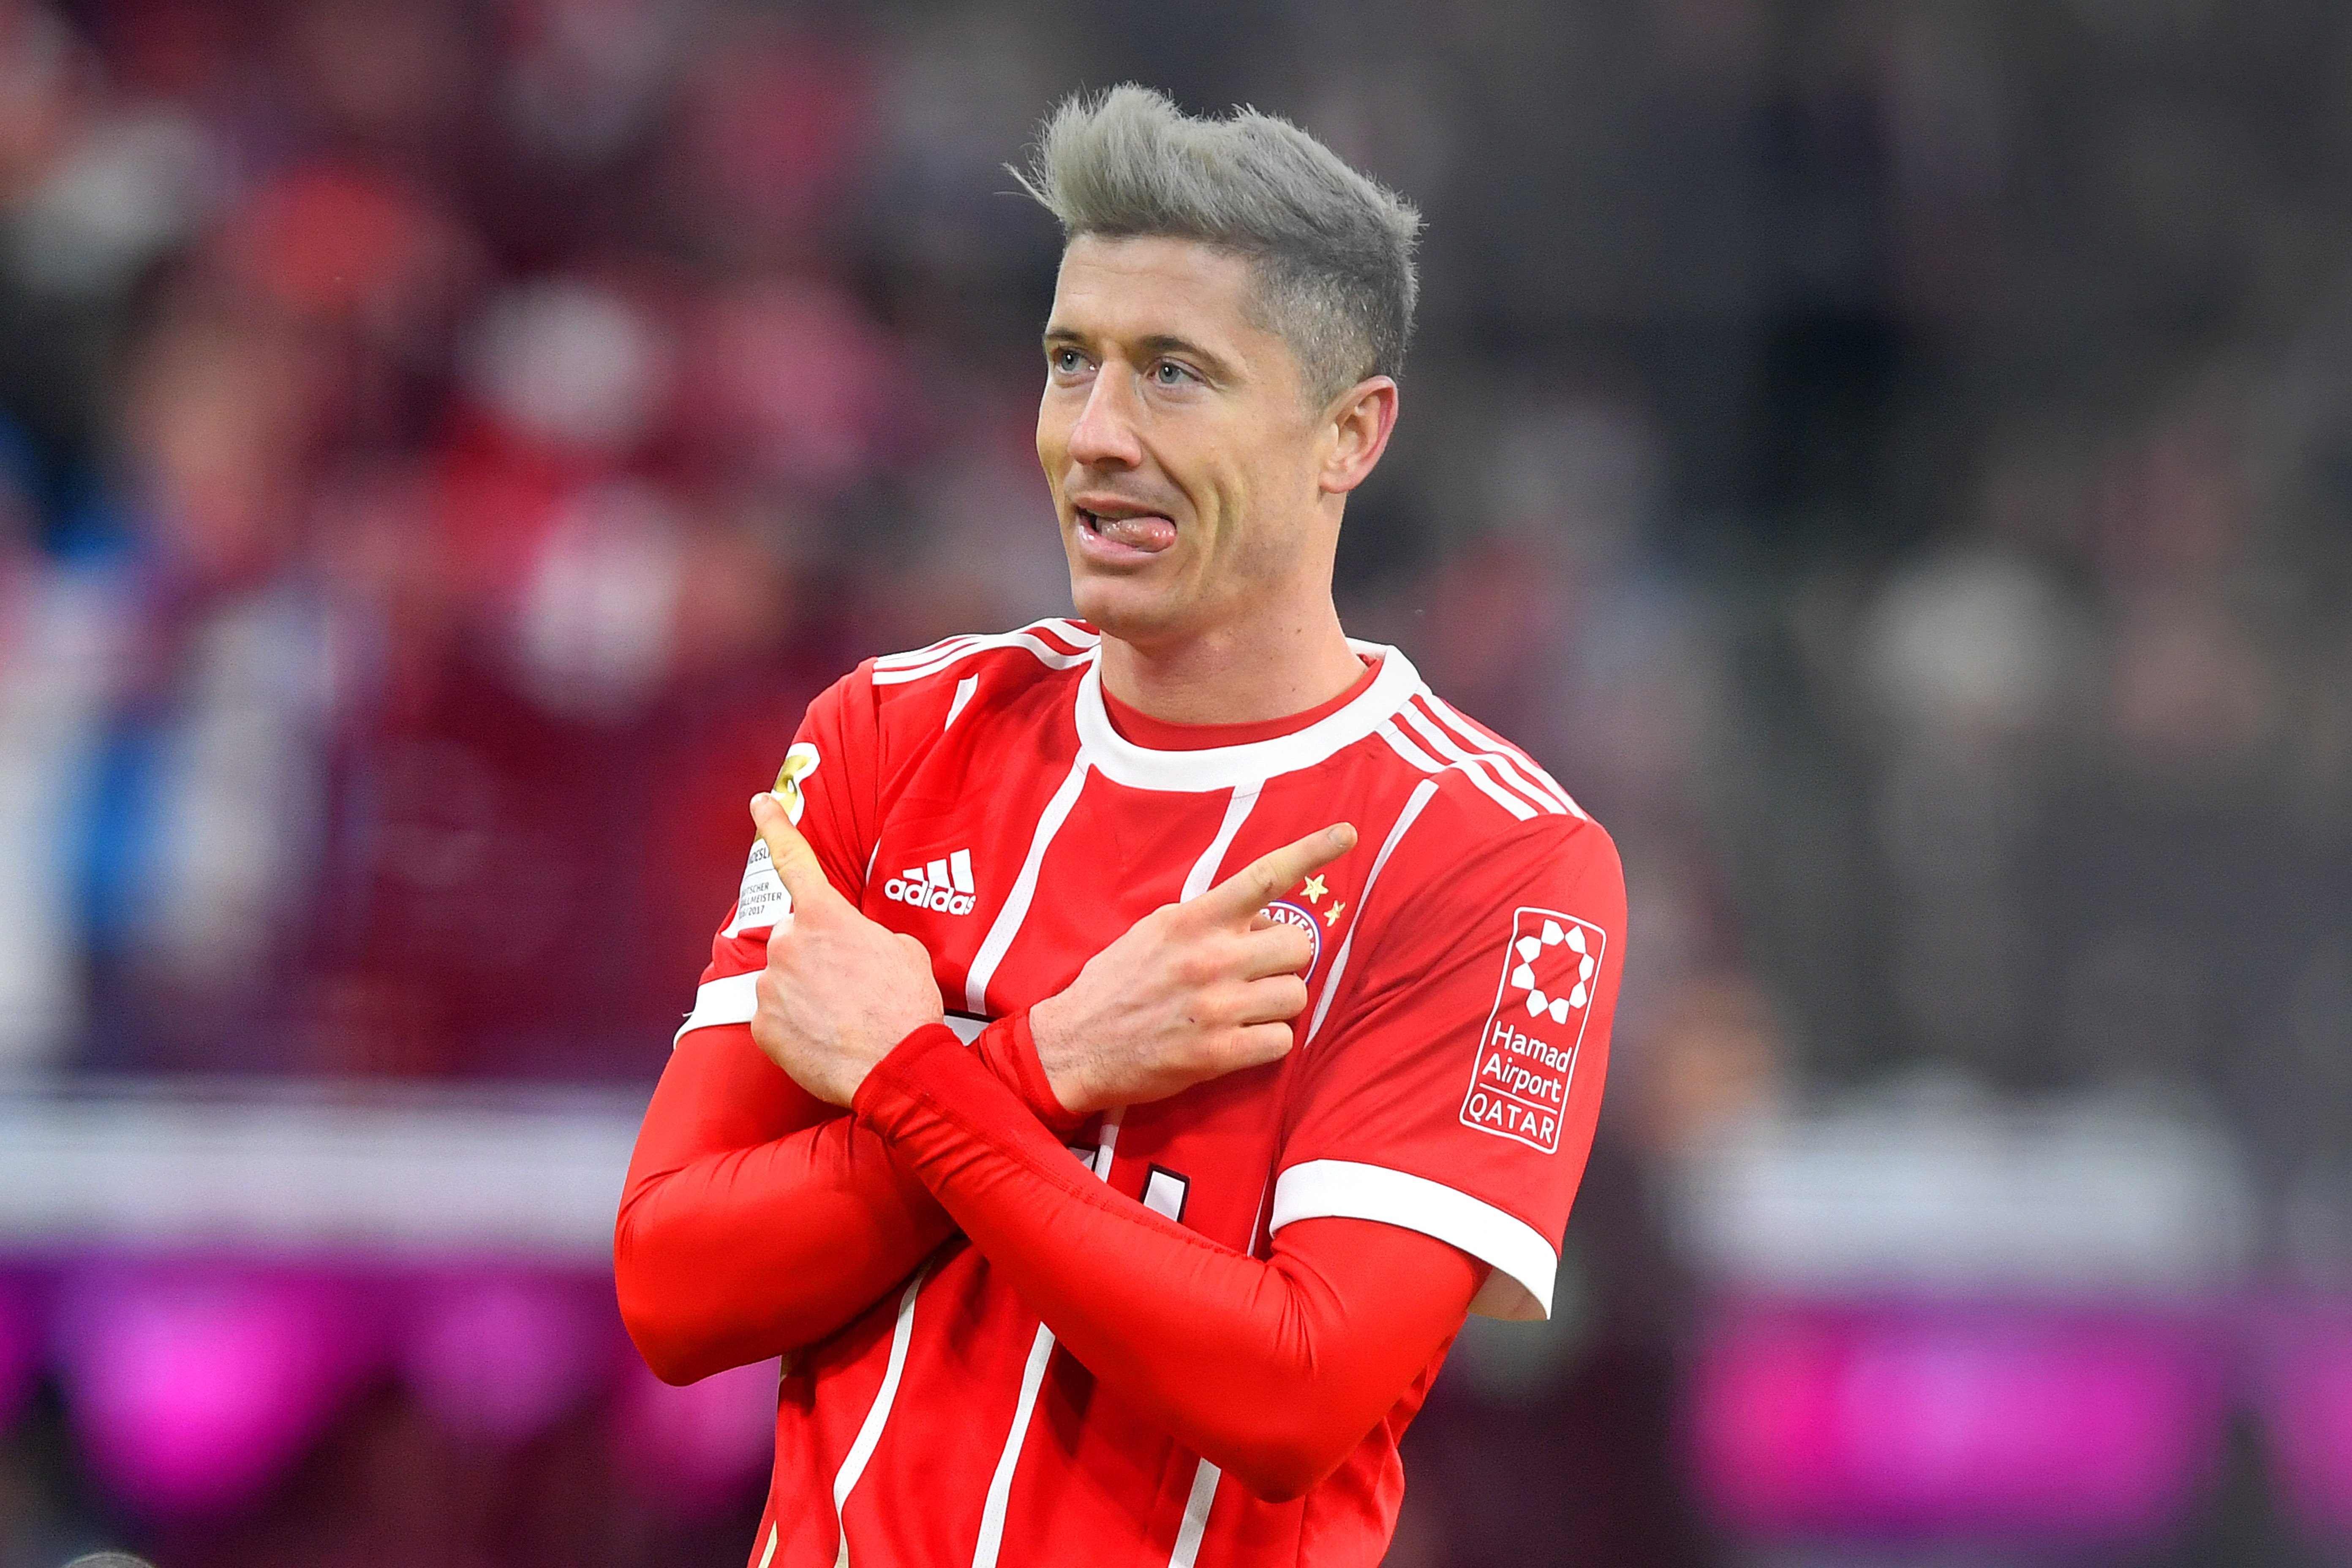 Lewandowski recently got his hair ready for the move. Image: PA